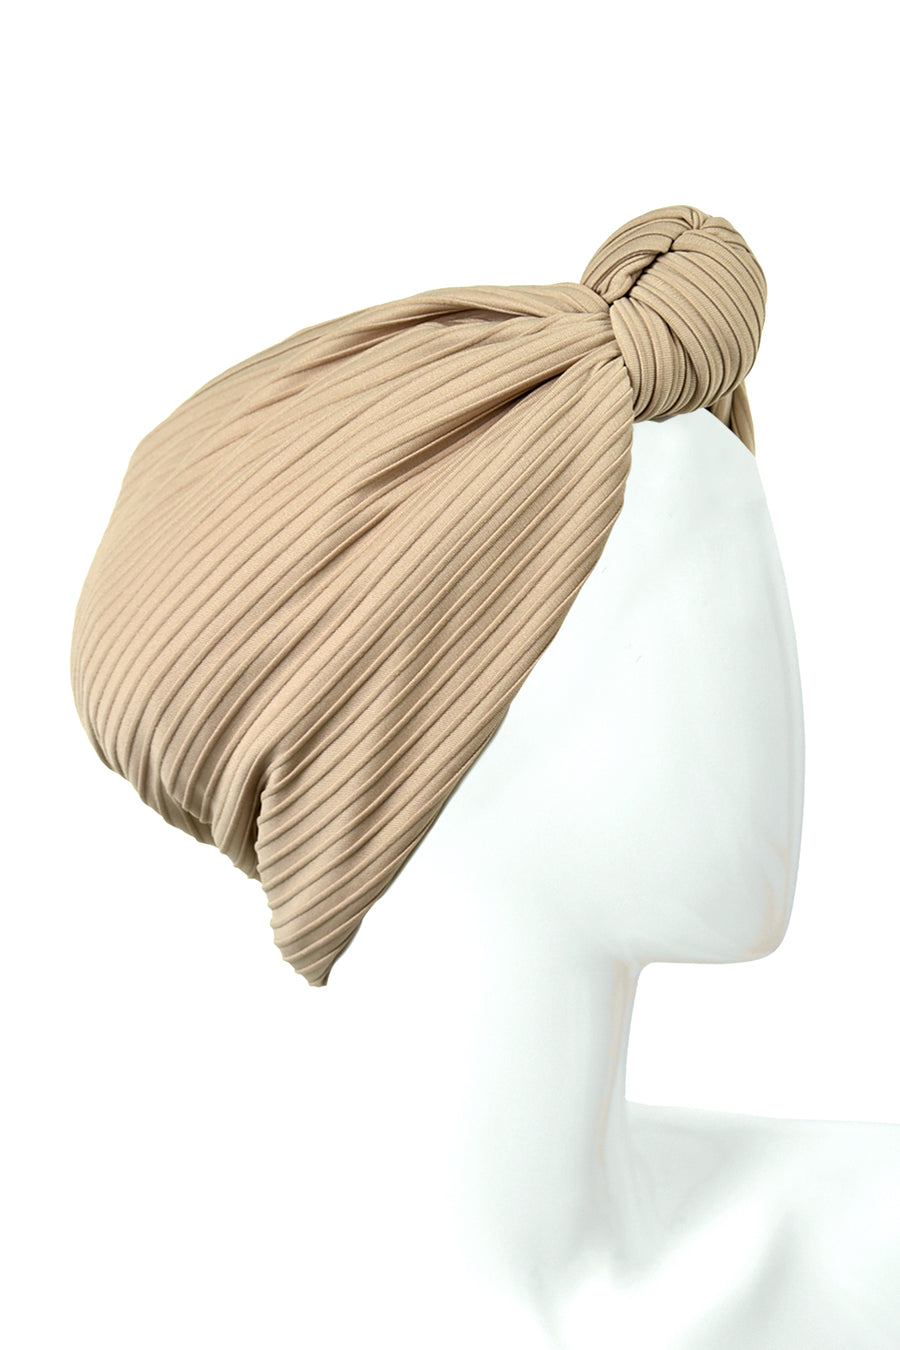 Les Courtilles - NEW TURBAN !